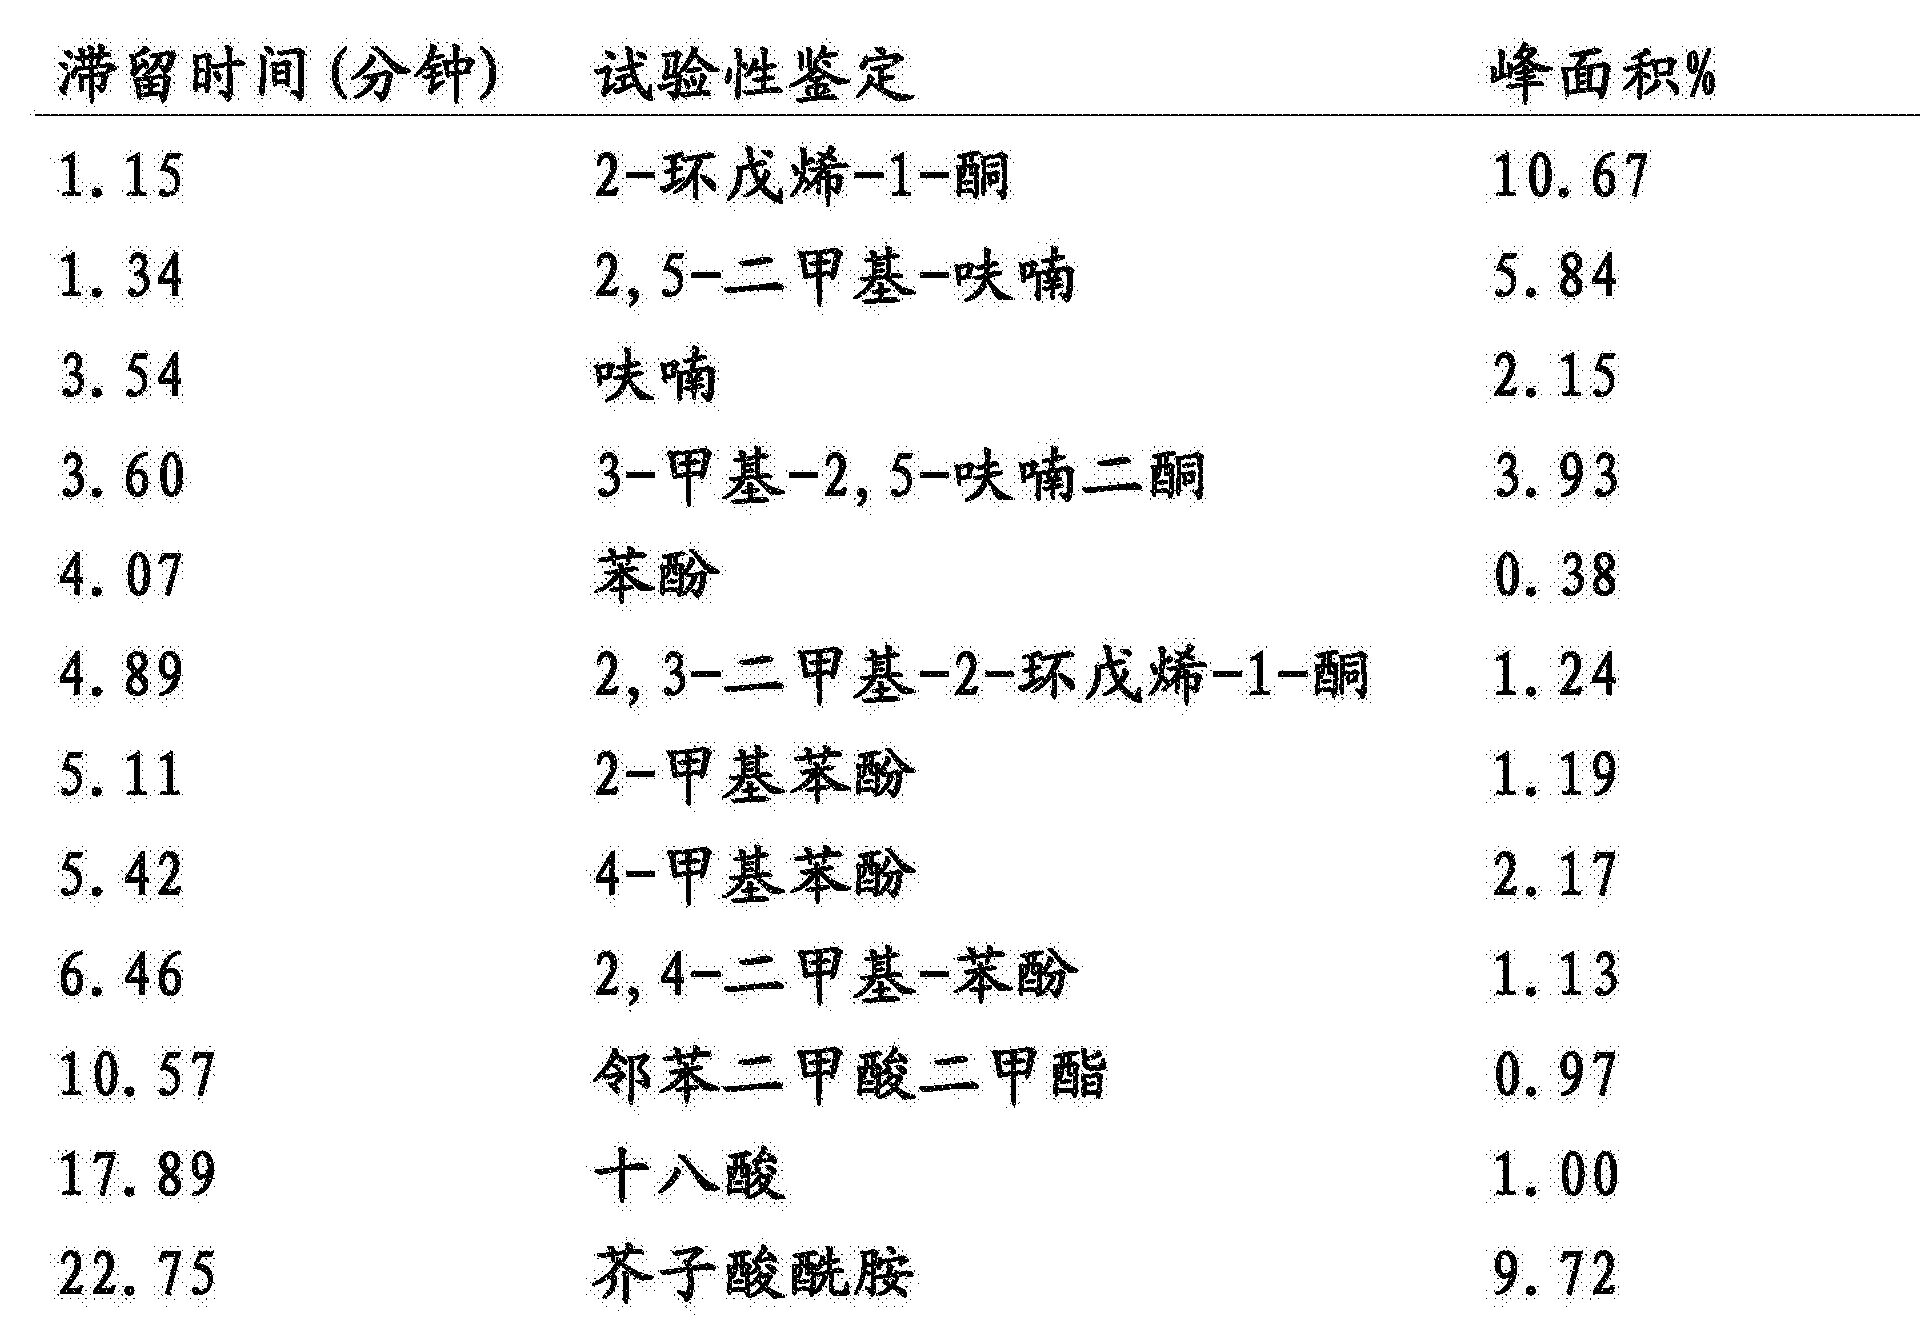 CN105176460A - Carbohydrate polyamine binders and materials